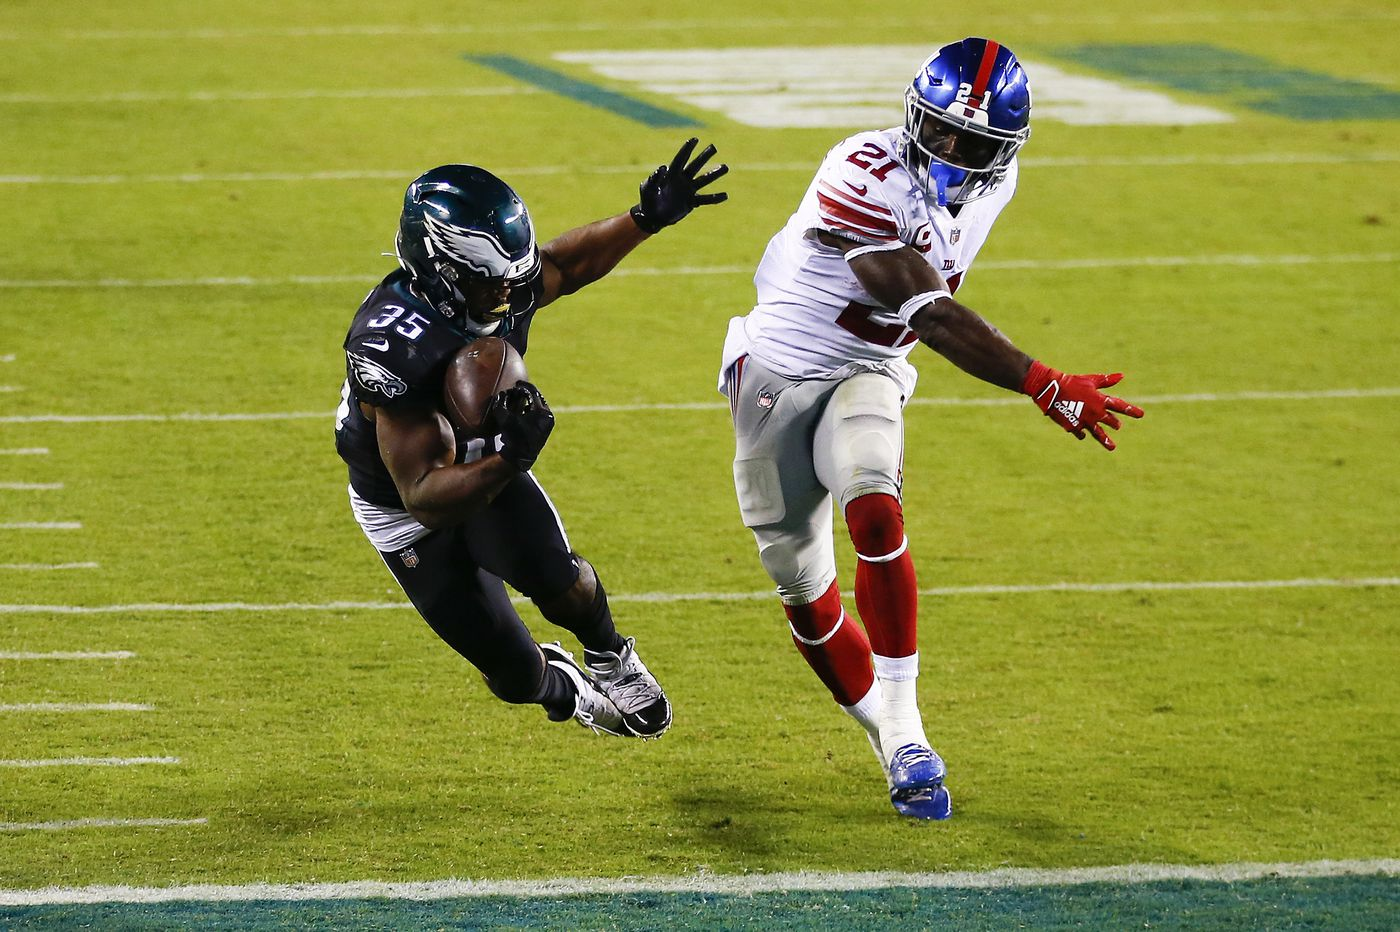 Eagles-Giants Up-Down Drill: Boston Scott to the rescue